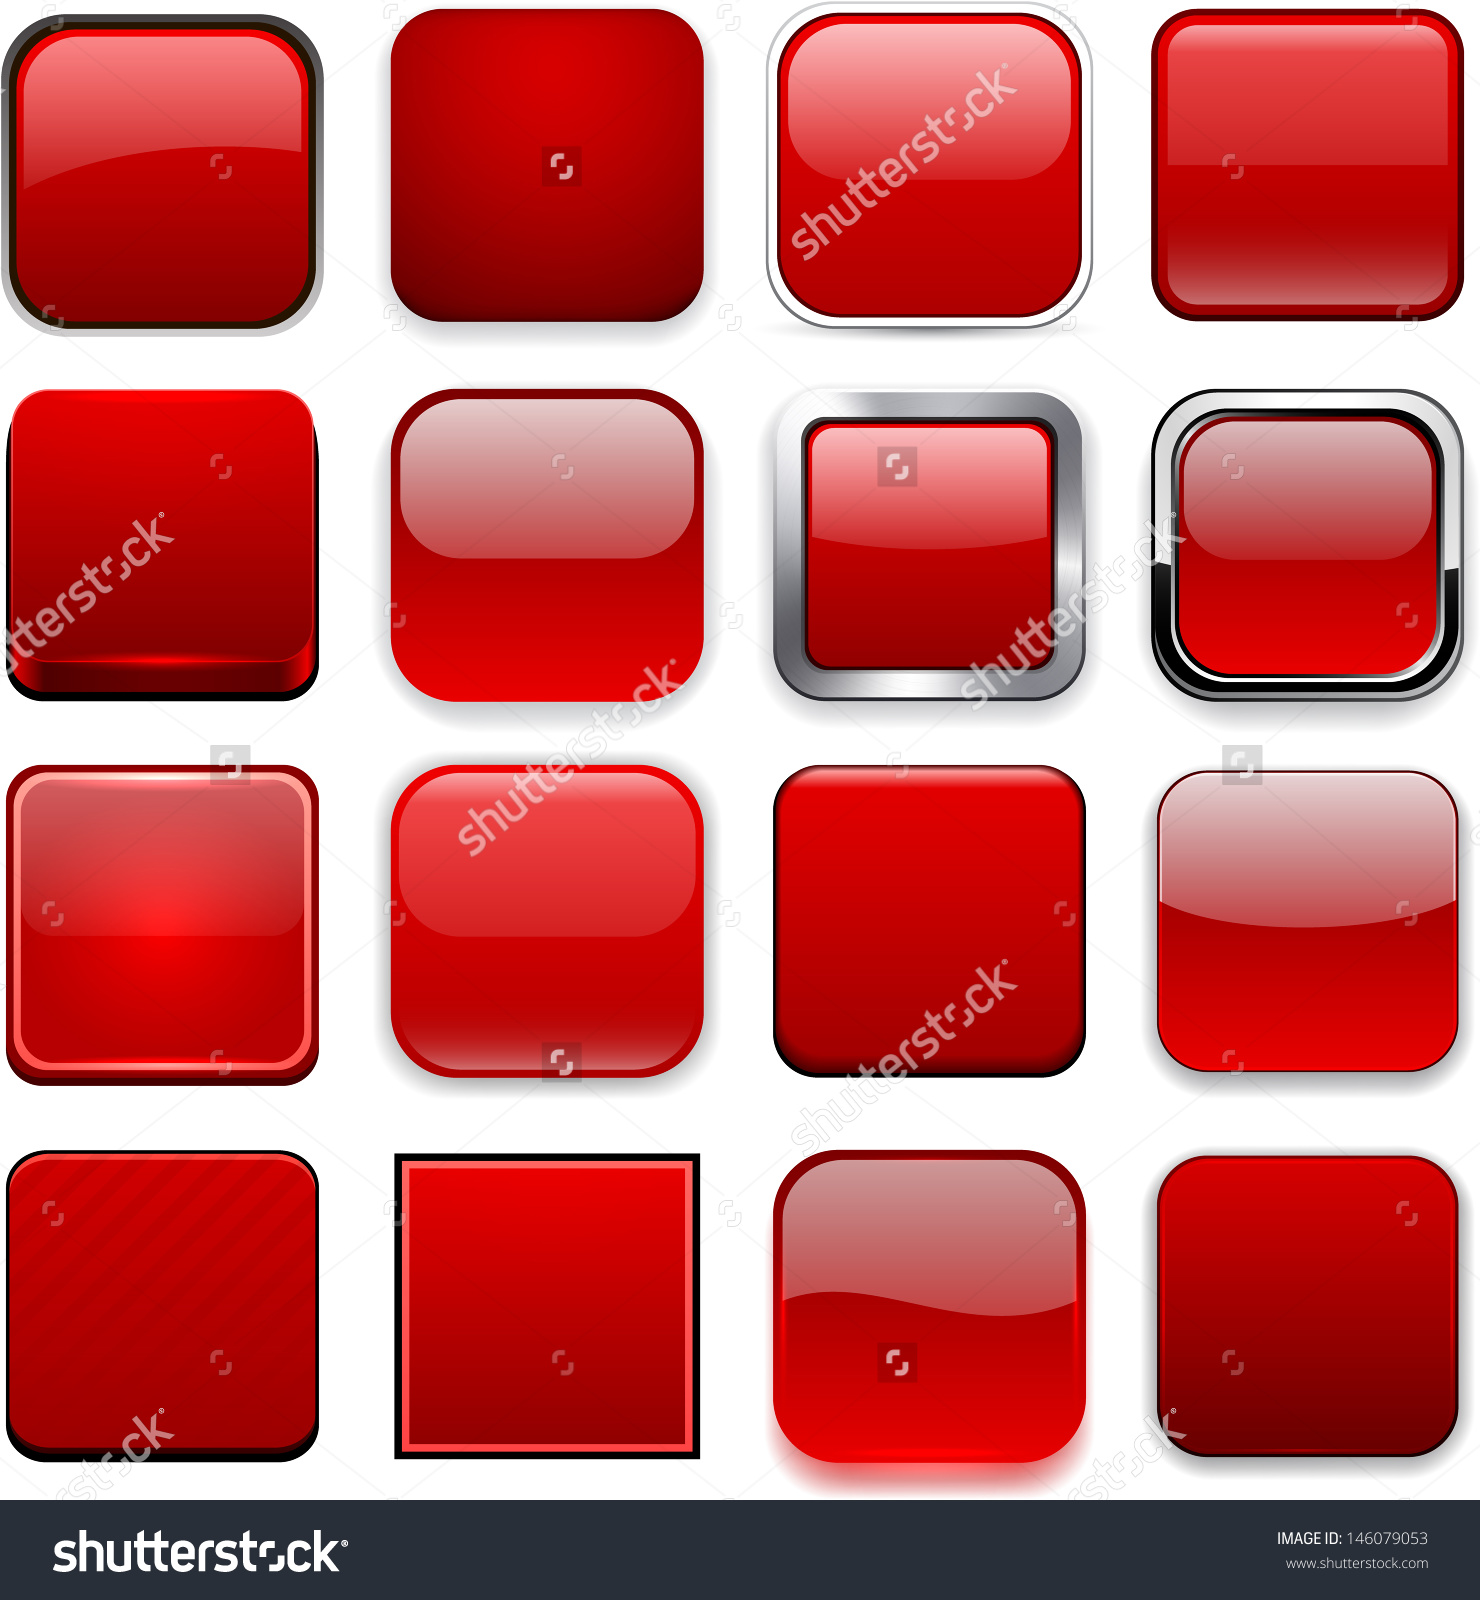 Logo clipart website picture free stock Set Blank Red Square Buttons Website Stock Vector 146079053 ... picture free stock